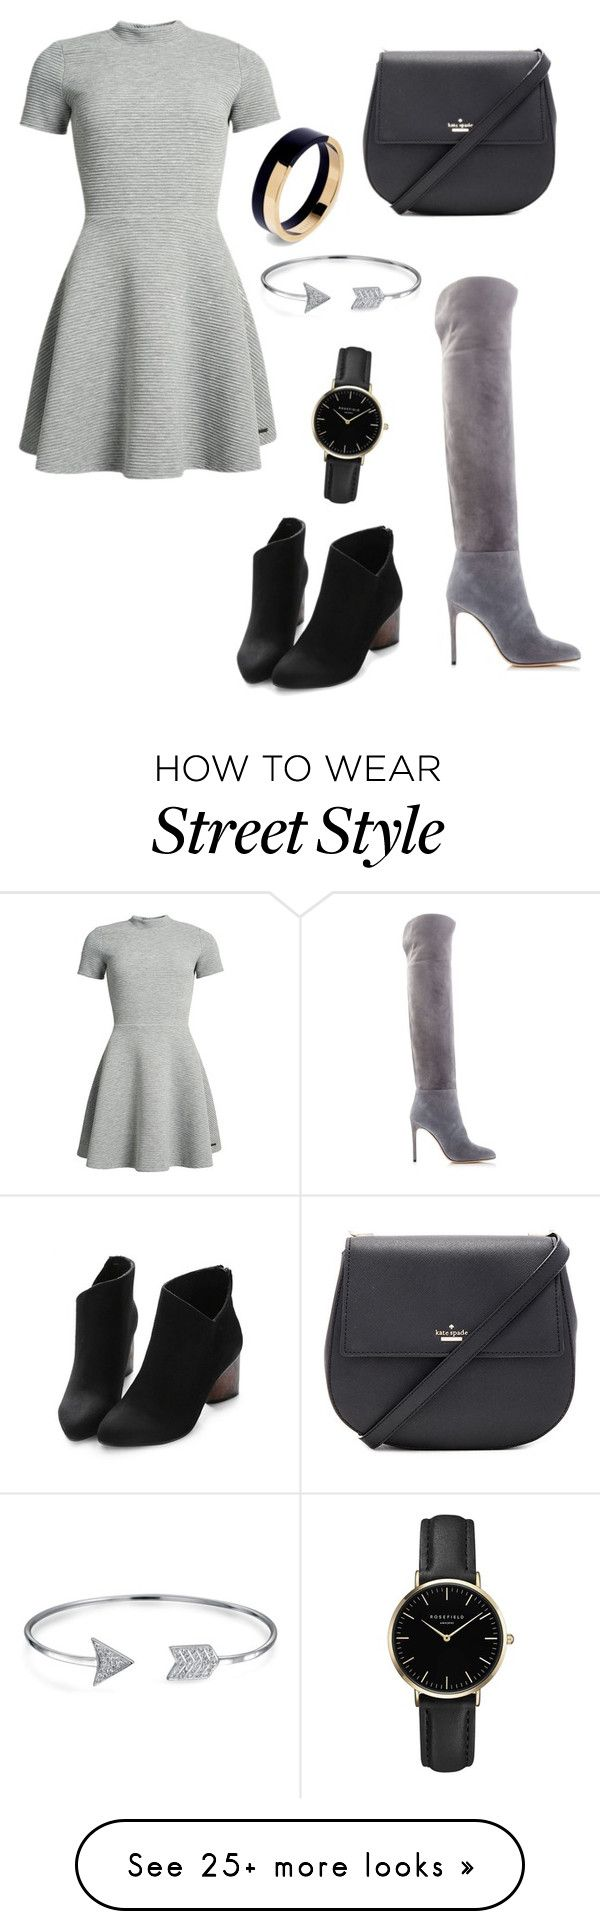 """street style"" by veriangi-dedej on Polyvore featuring Superdry, Kate Spade, Bling Jewelry, Sergio Rossi, ROSEFIELD and Marni"